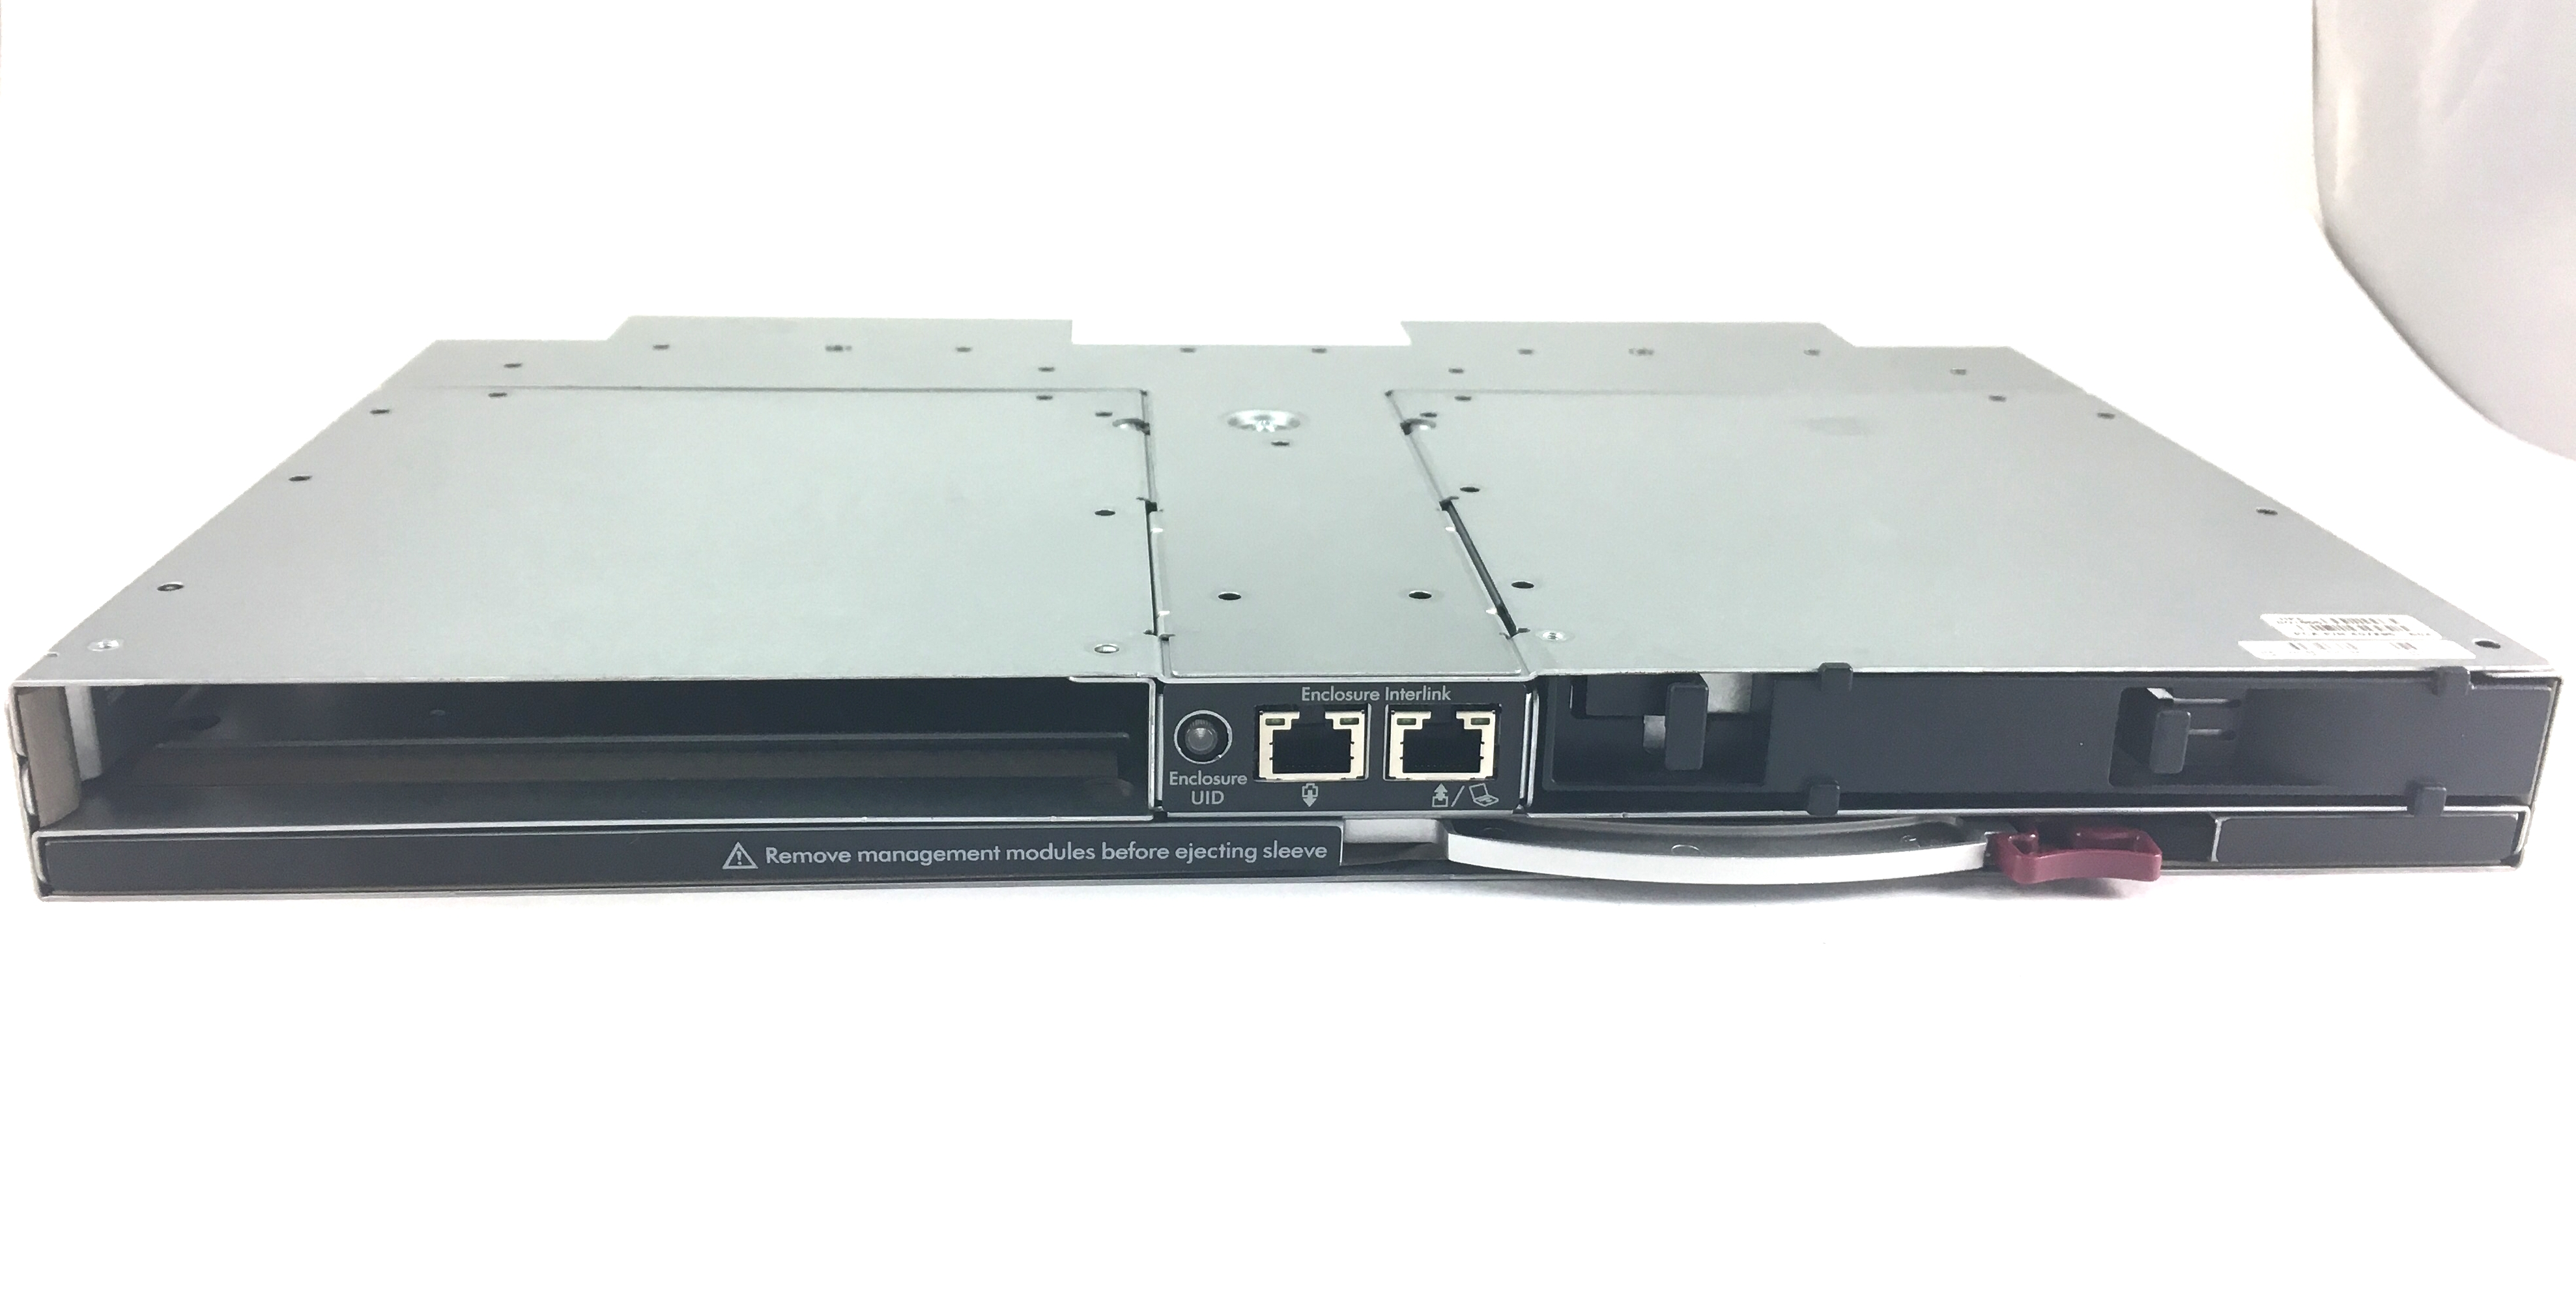 HP BLC7000 Administration Onboard Sleeve (711994-001)